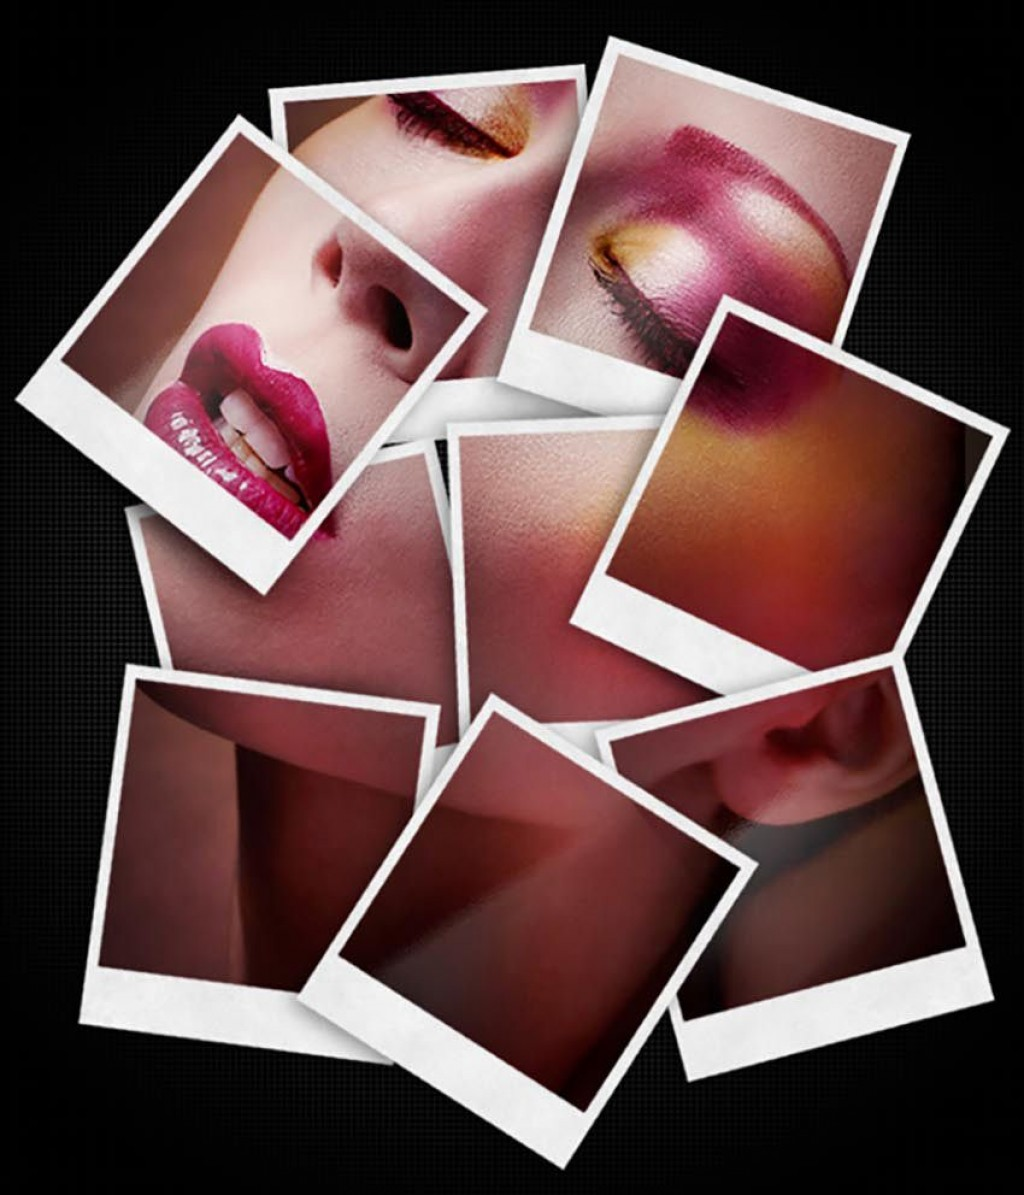 002 Staggering Free Photo Collage Template Download Picture  Psd PowerpointLarge